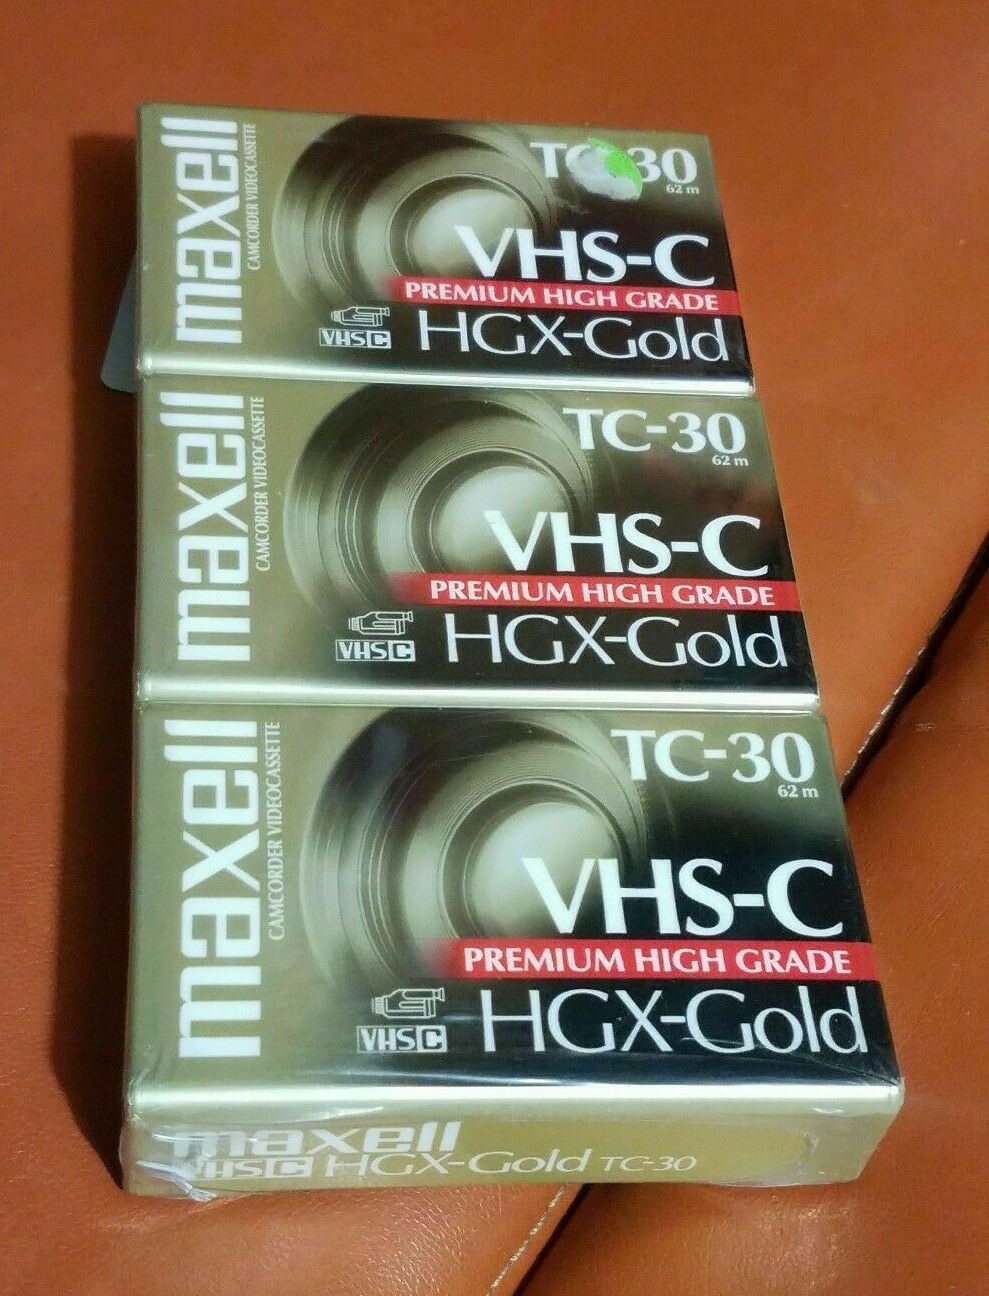 Maxwell VHS-C HGX-Gold 3 Pack Tapes New Sealed As Seen TC-30 Camcorder Premium  - $12.98